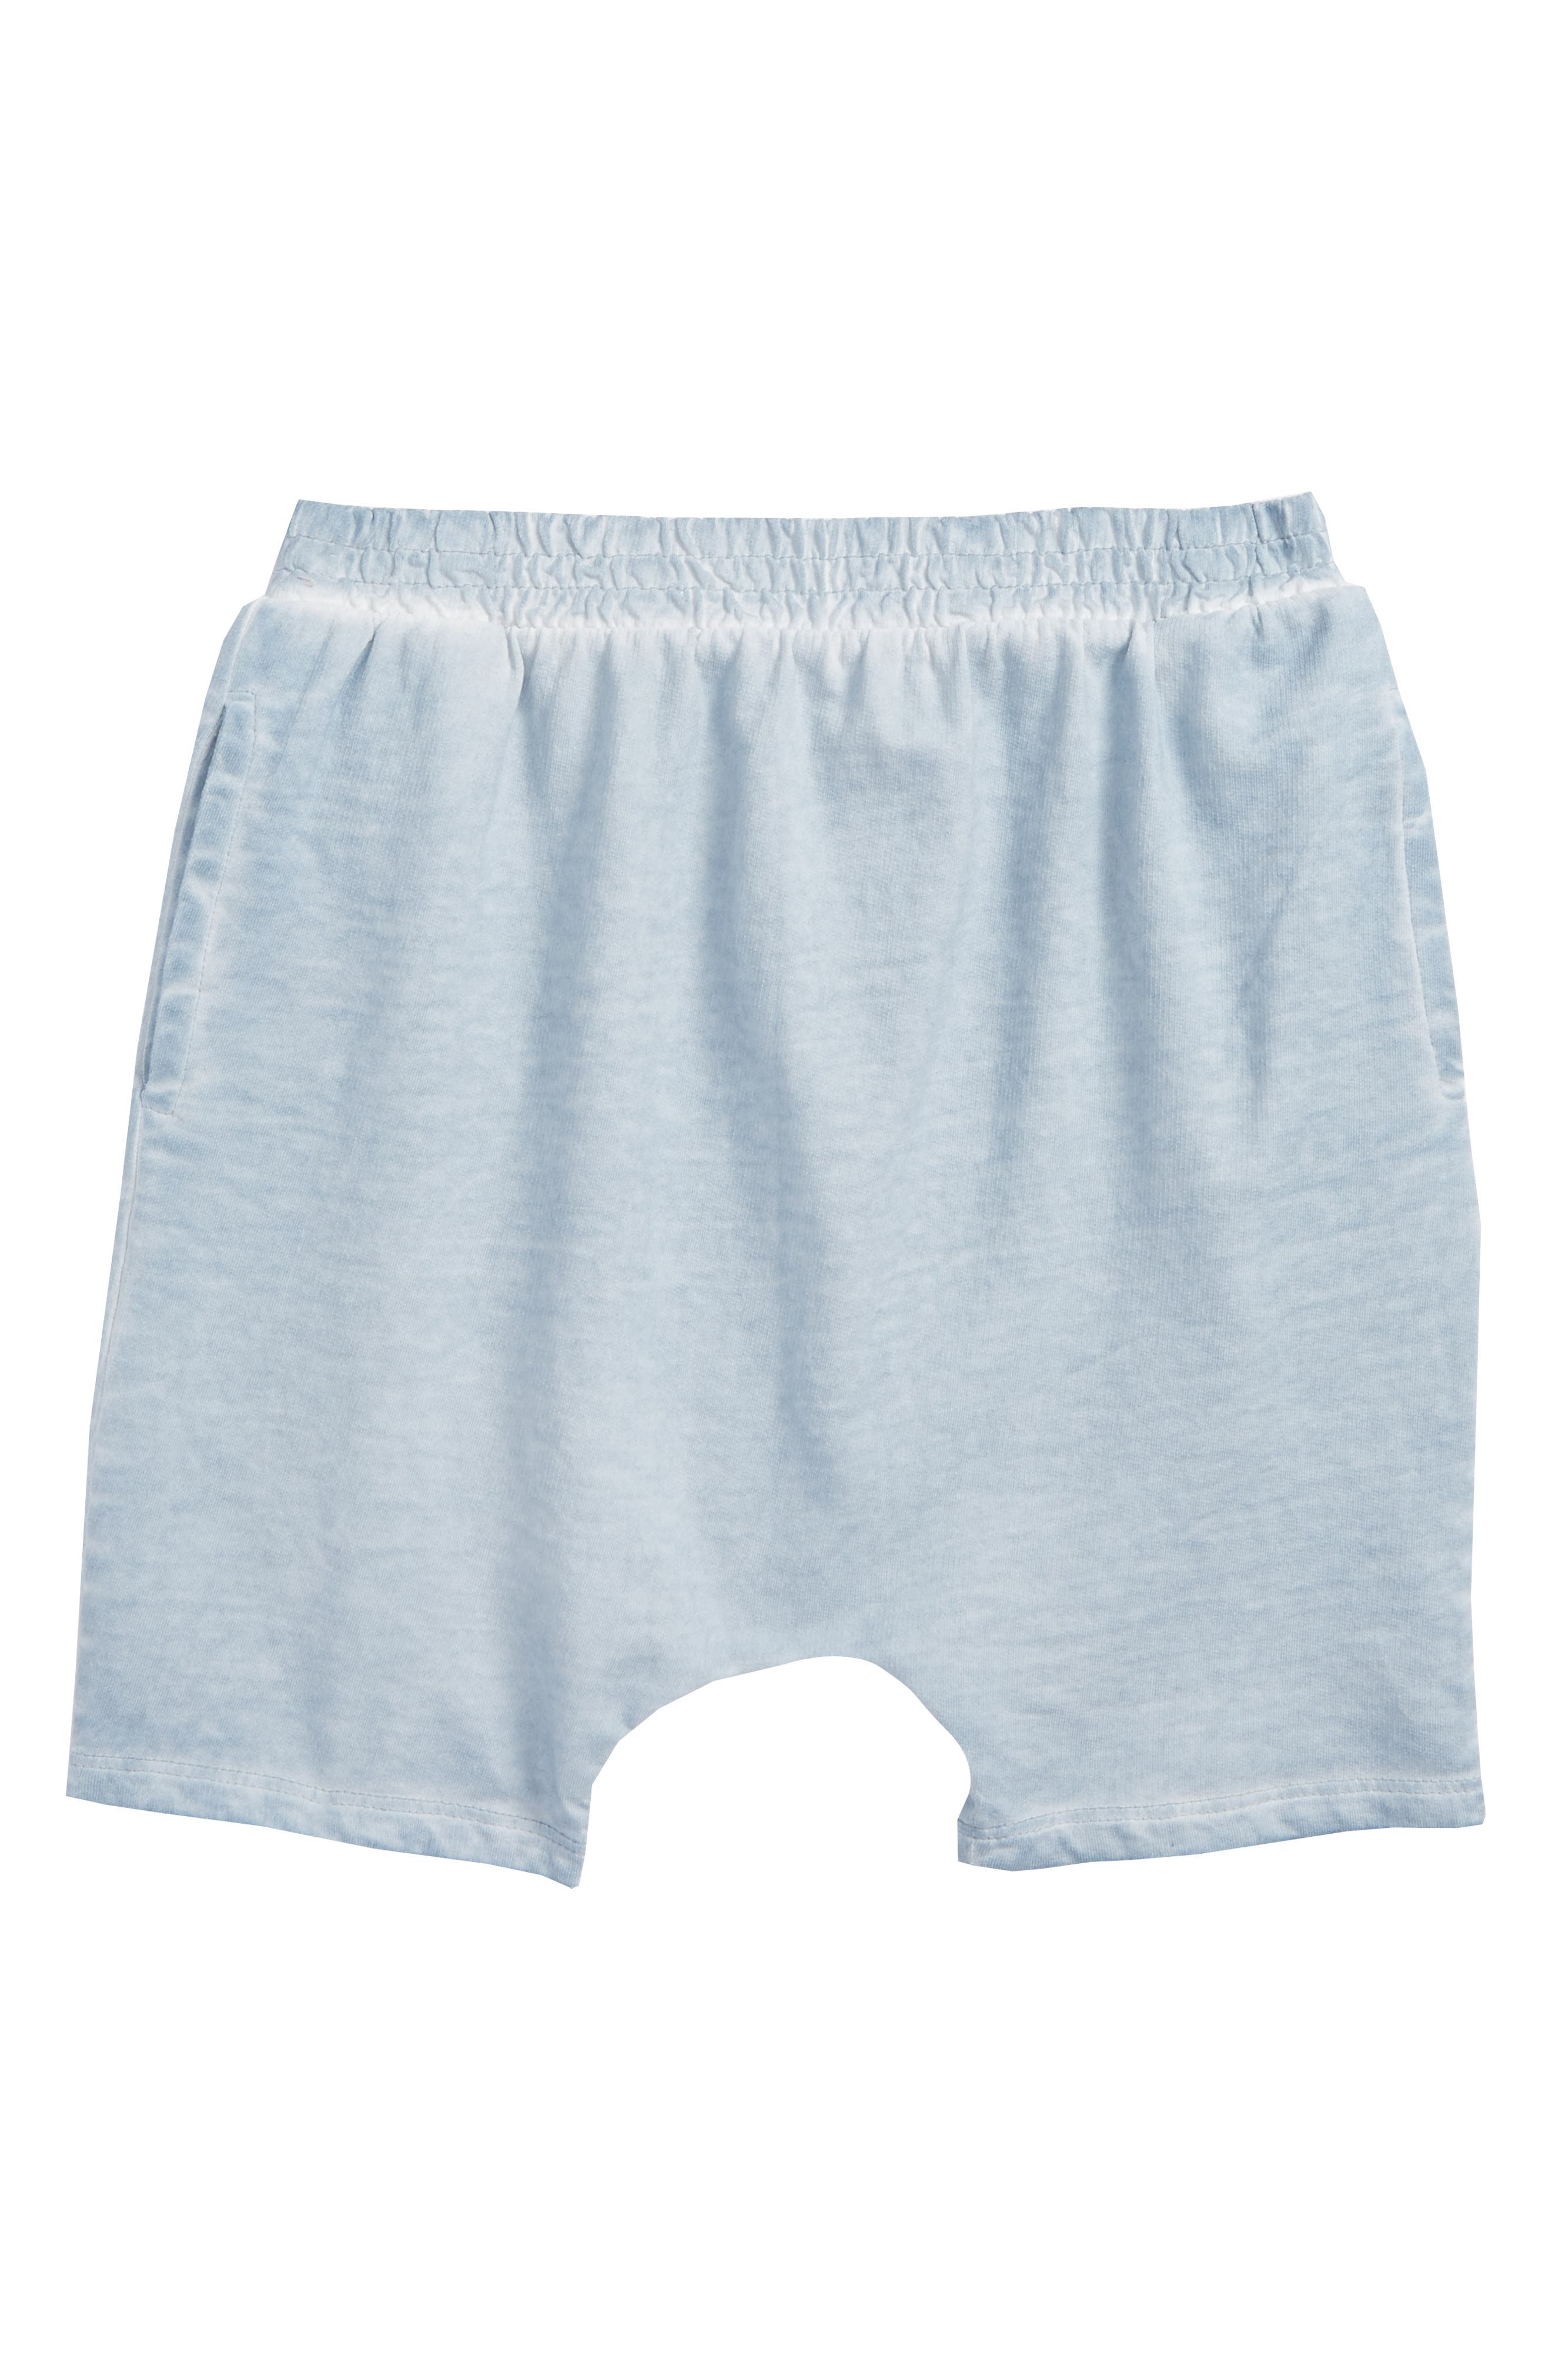 Cotton Shorts,                         Main,                         color, Blue Fog Wash